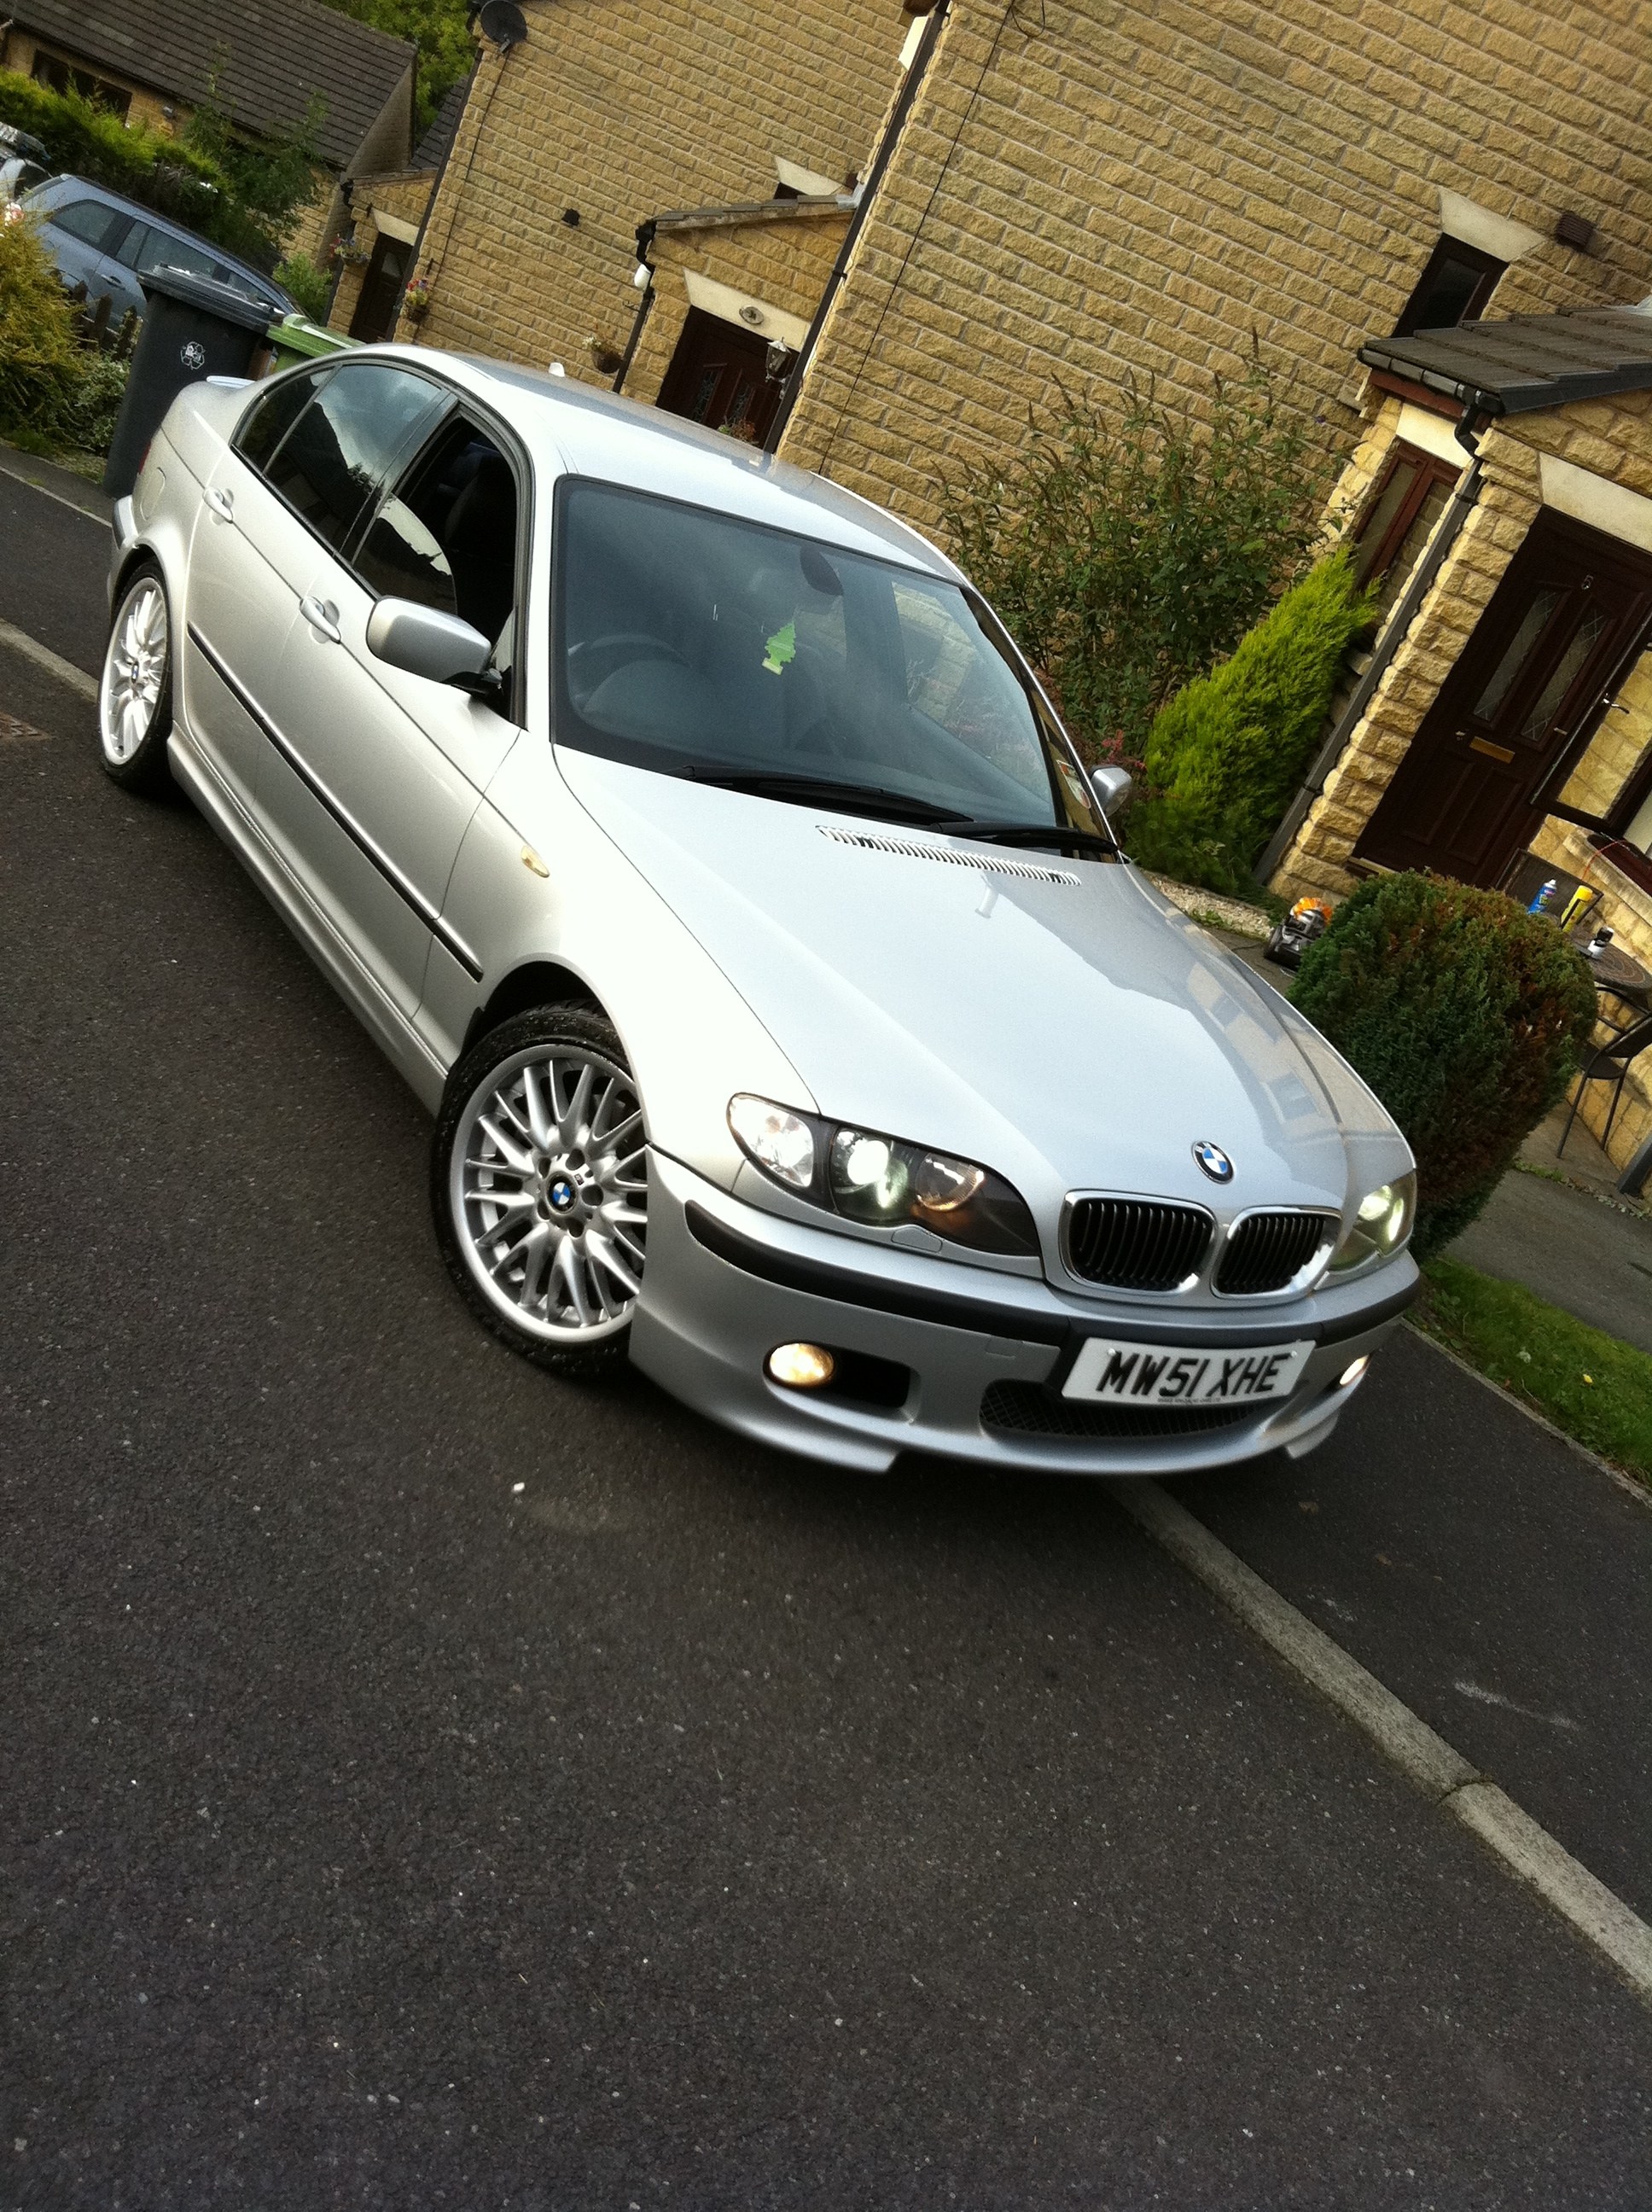 rt_lova's 2002 BMW 3 Series